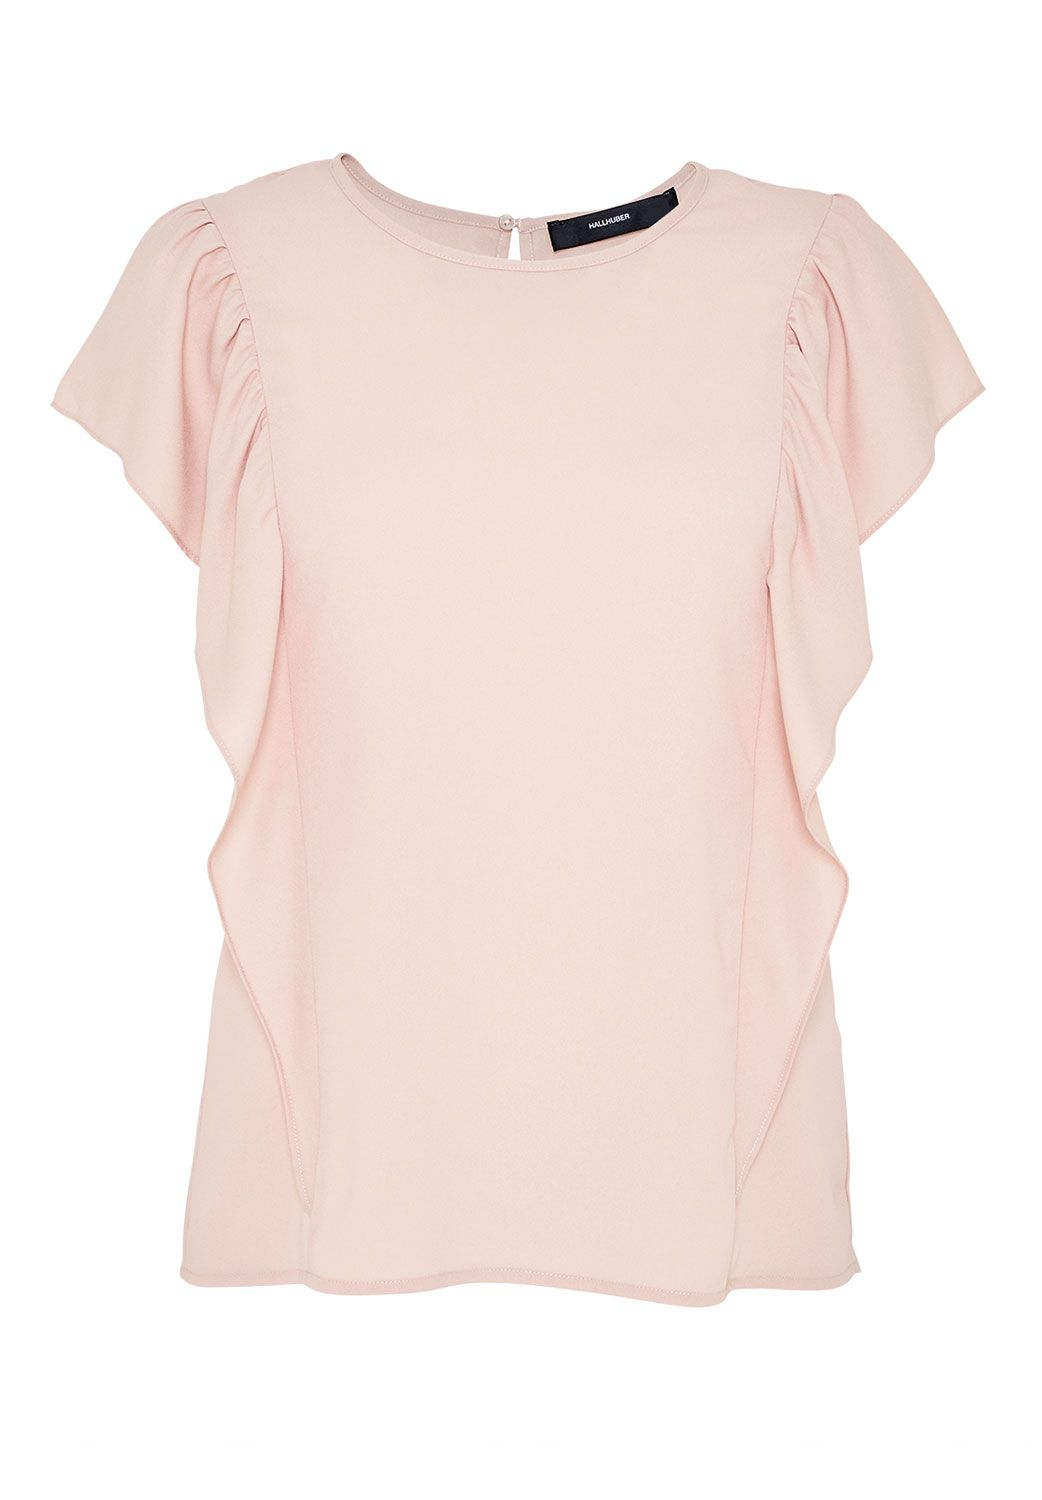 Hallhuber Top with long flounce shoulders, Pink